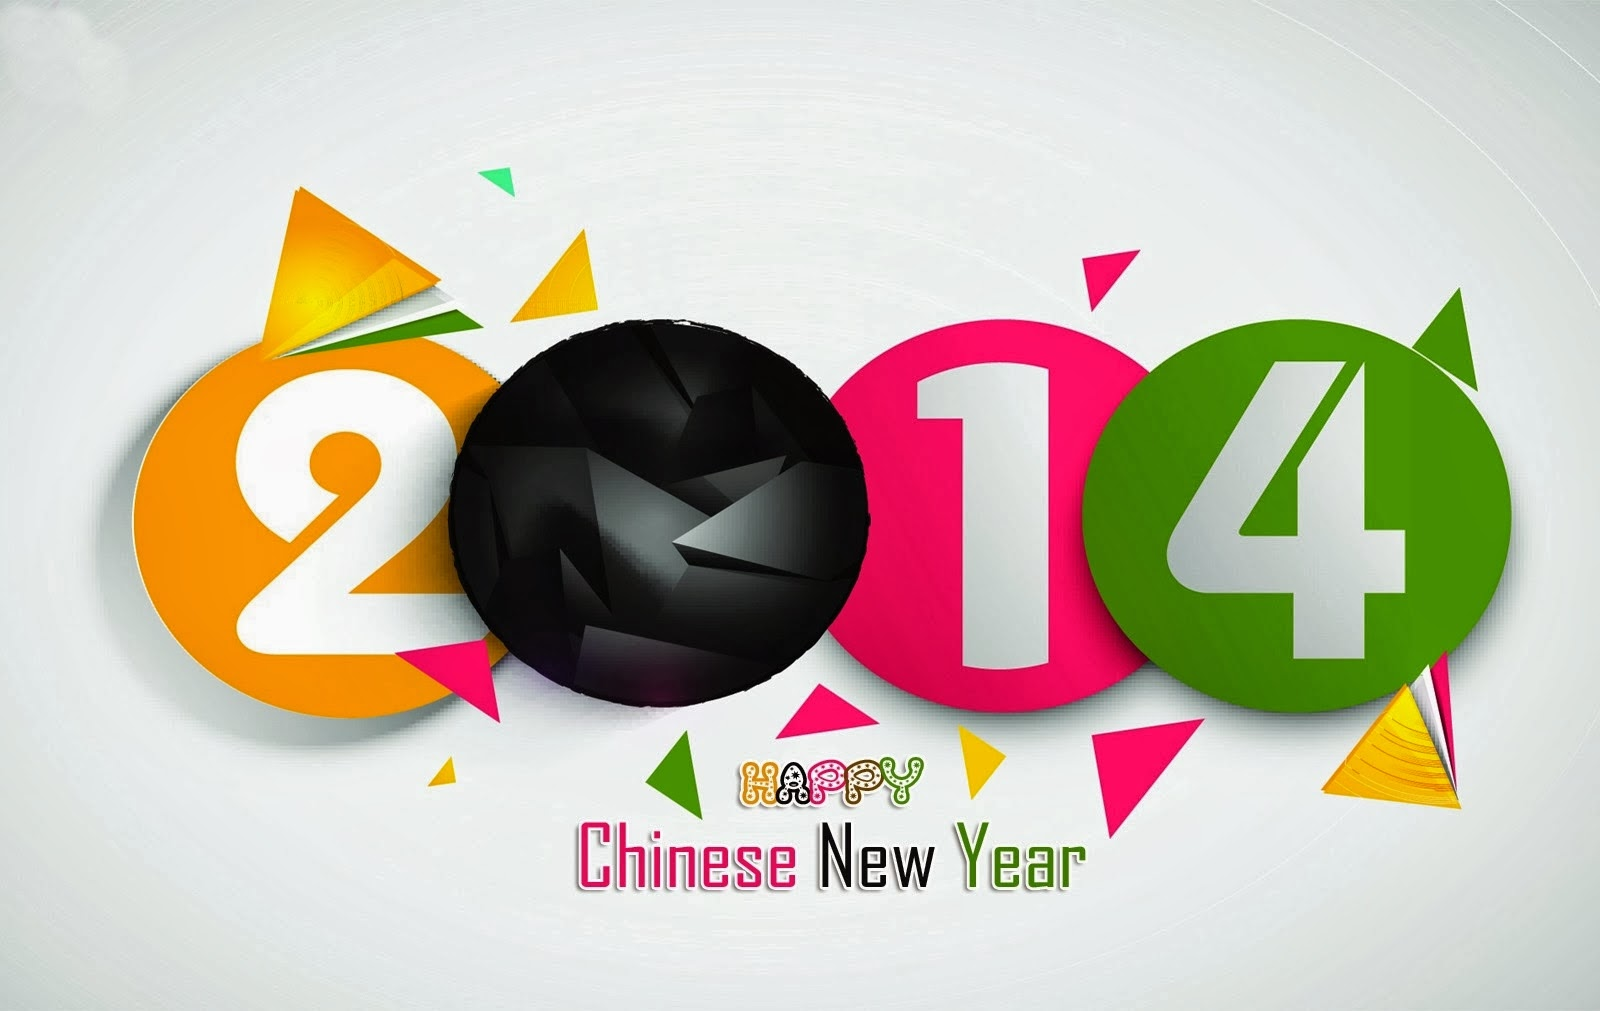 Happy new year 2014 wishes wallpaper with lunar new year greeting happy new year 2014 wishes wallpaper with lunar new year greeting cards kristyandbryce Images